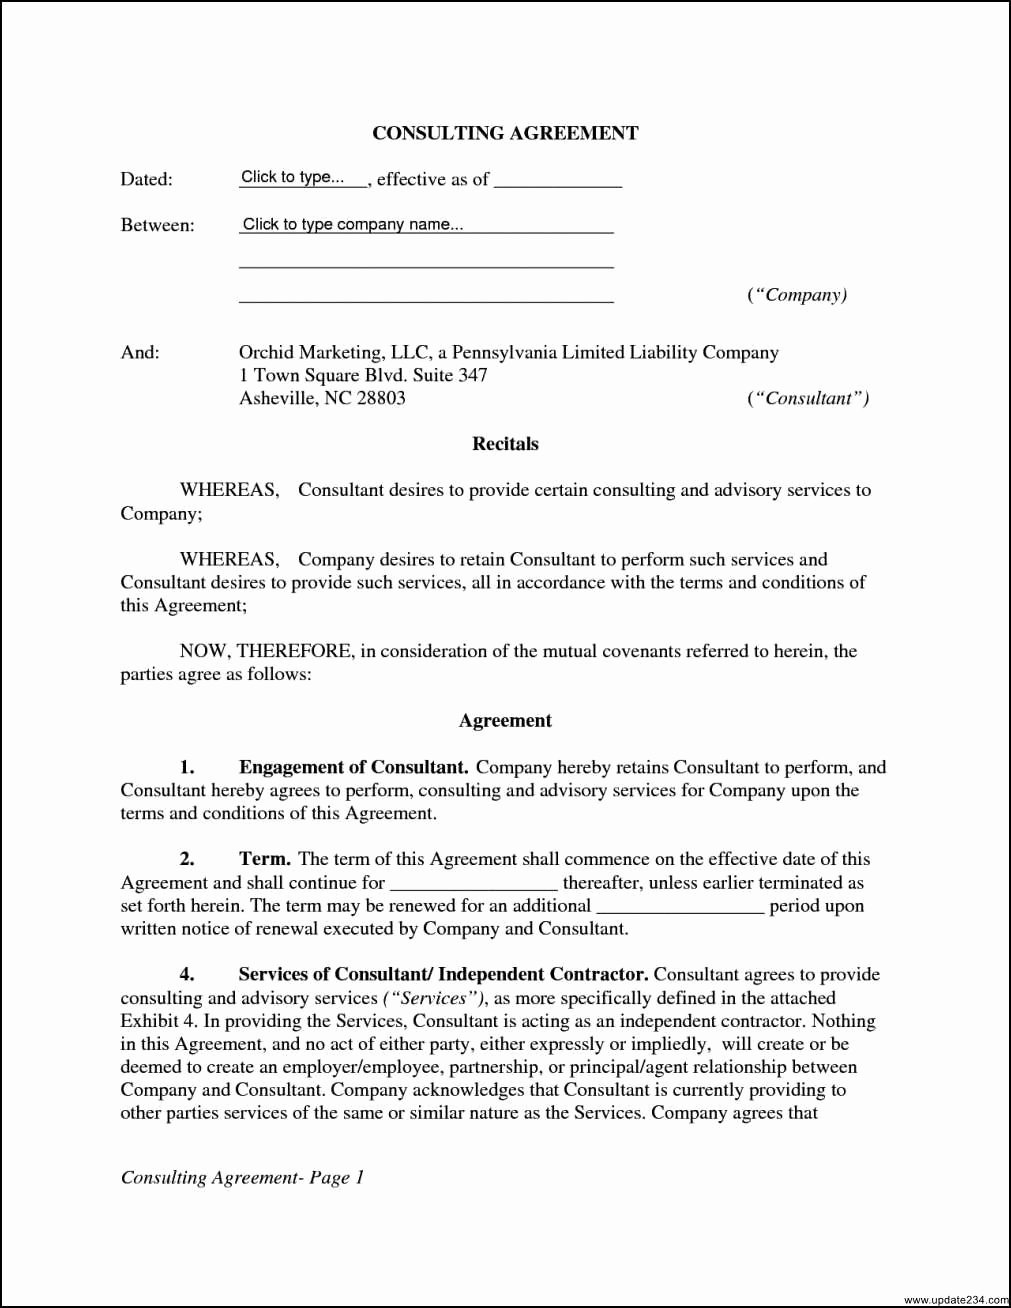 Consulting Agreement Template Word Unique 14 Fast Free Consulting Agreement Template Word Wu